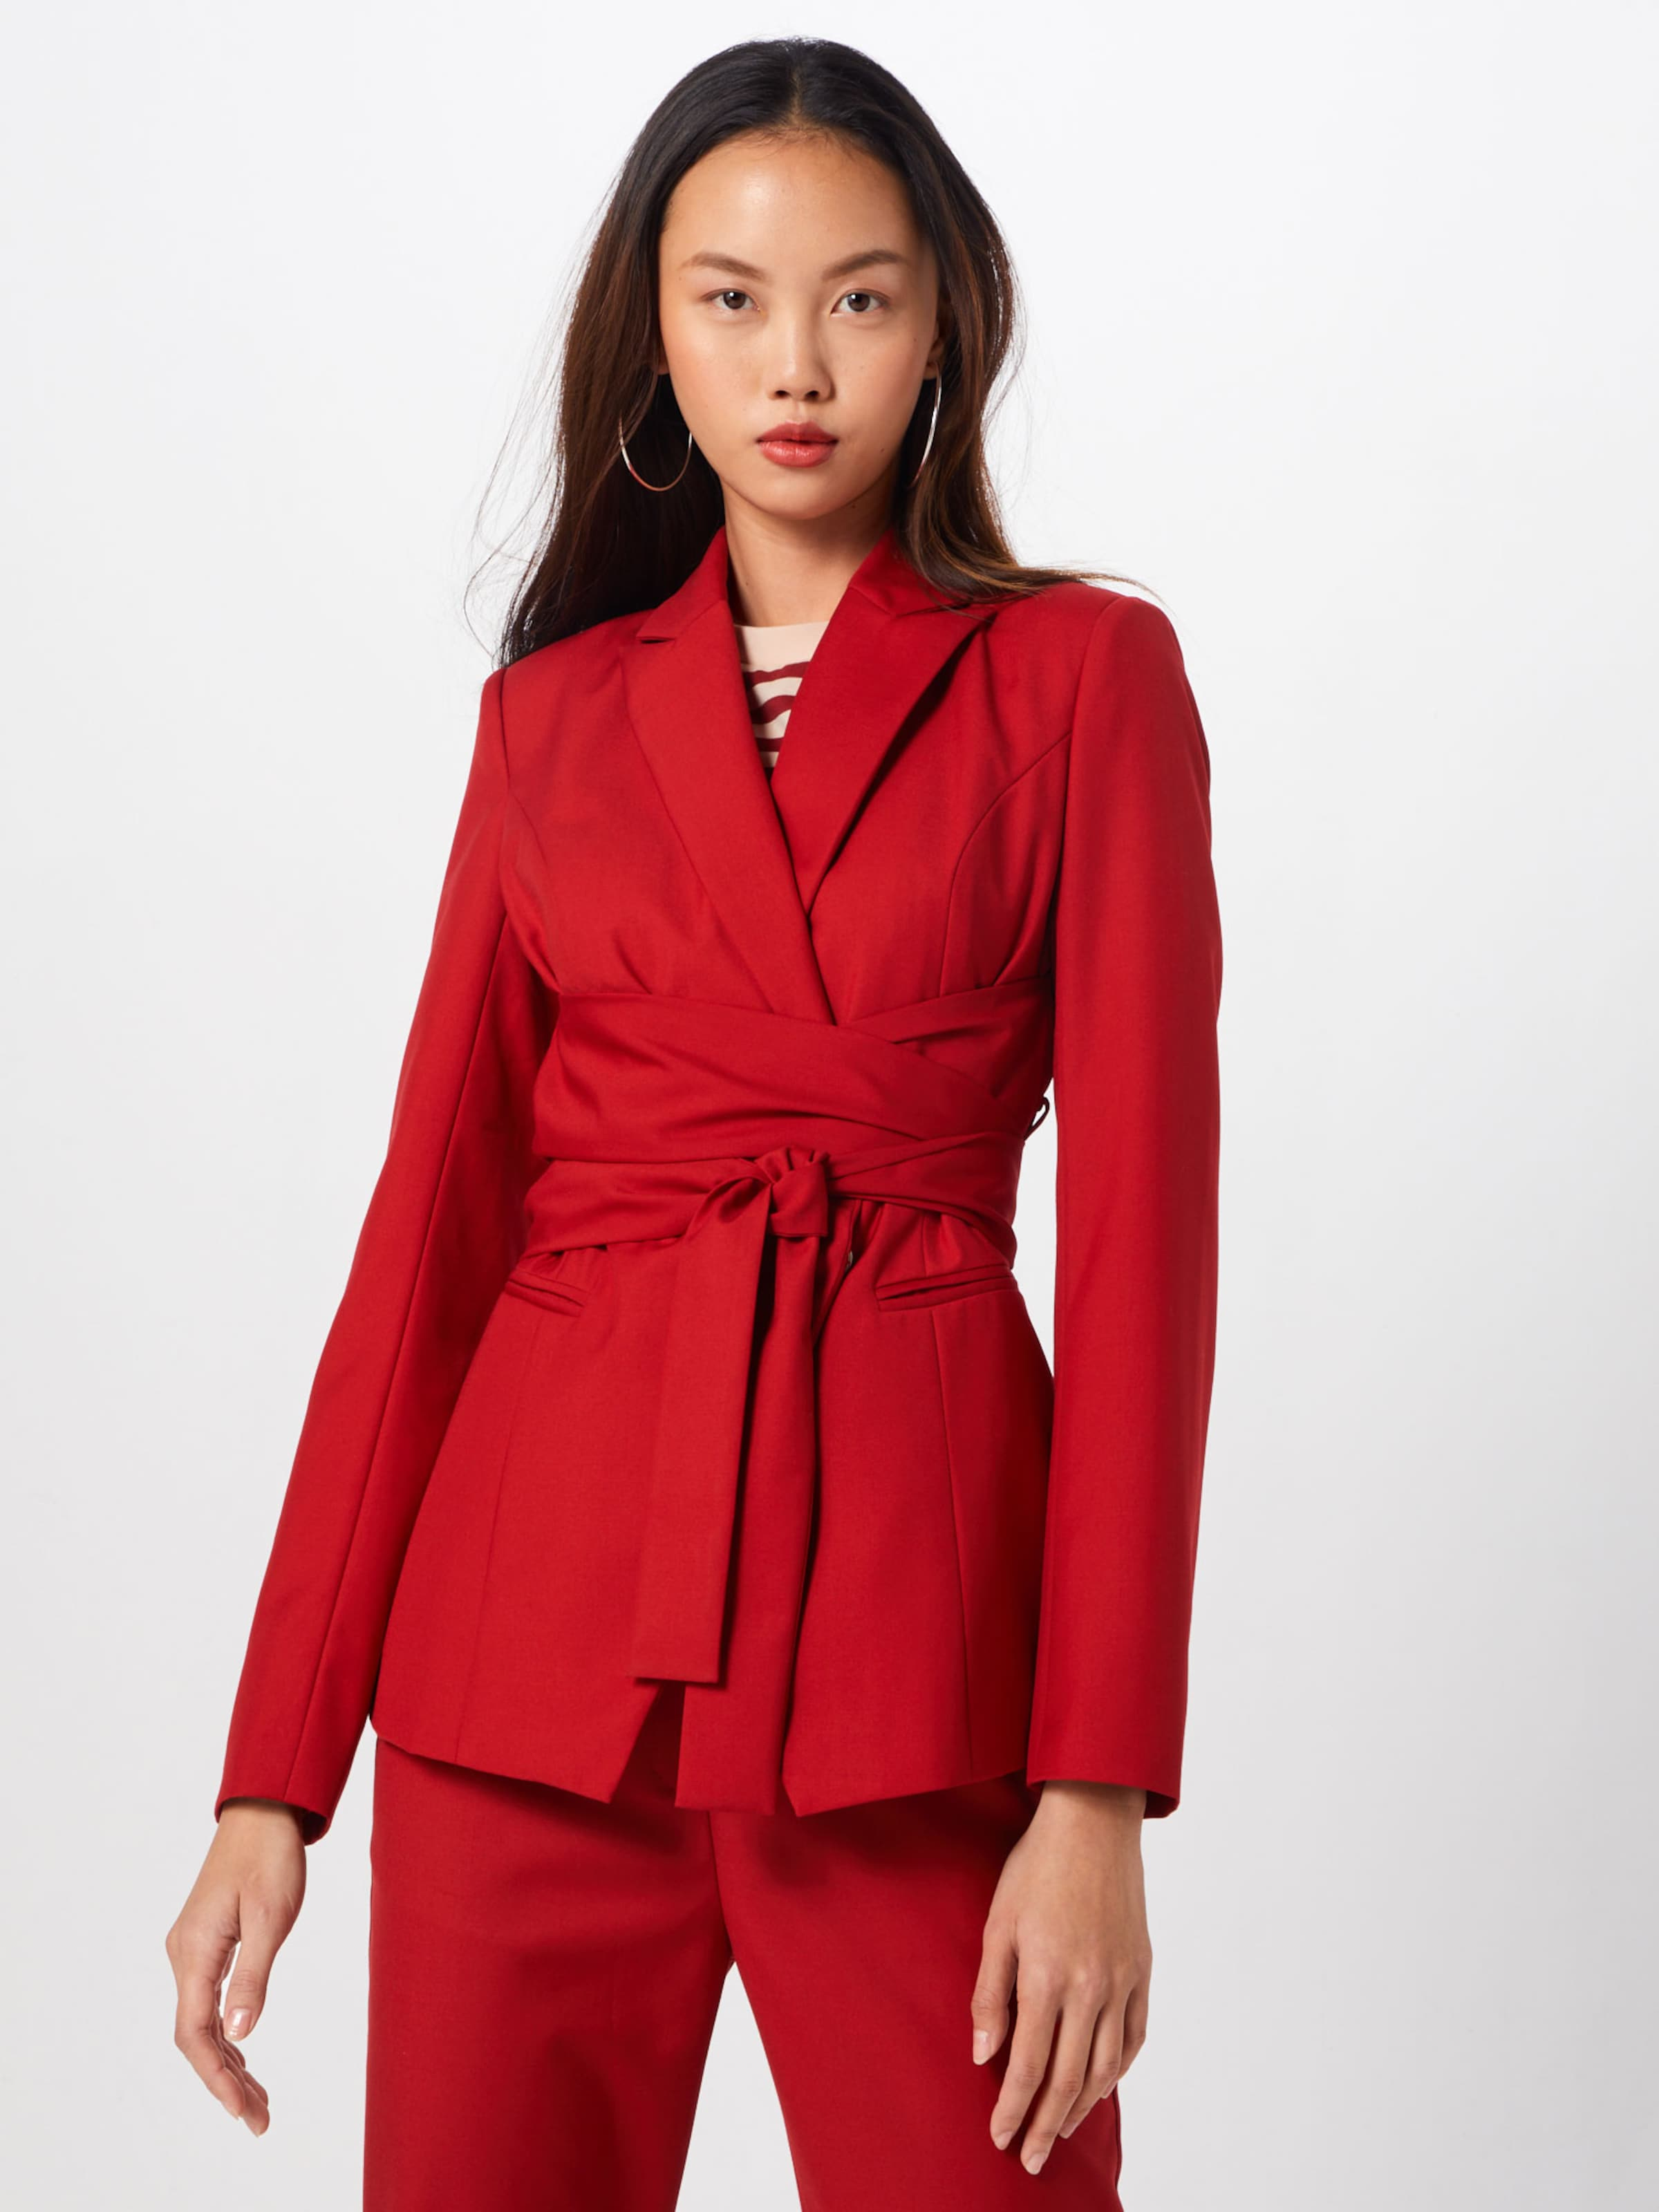 En 4thamp; Reckless Rouge 'shanghai' Blazer jLcSq54A3R